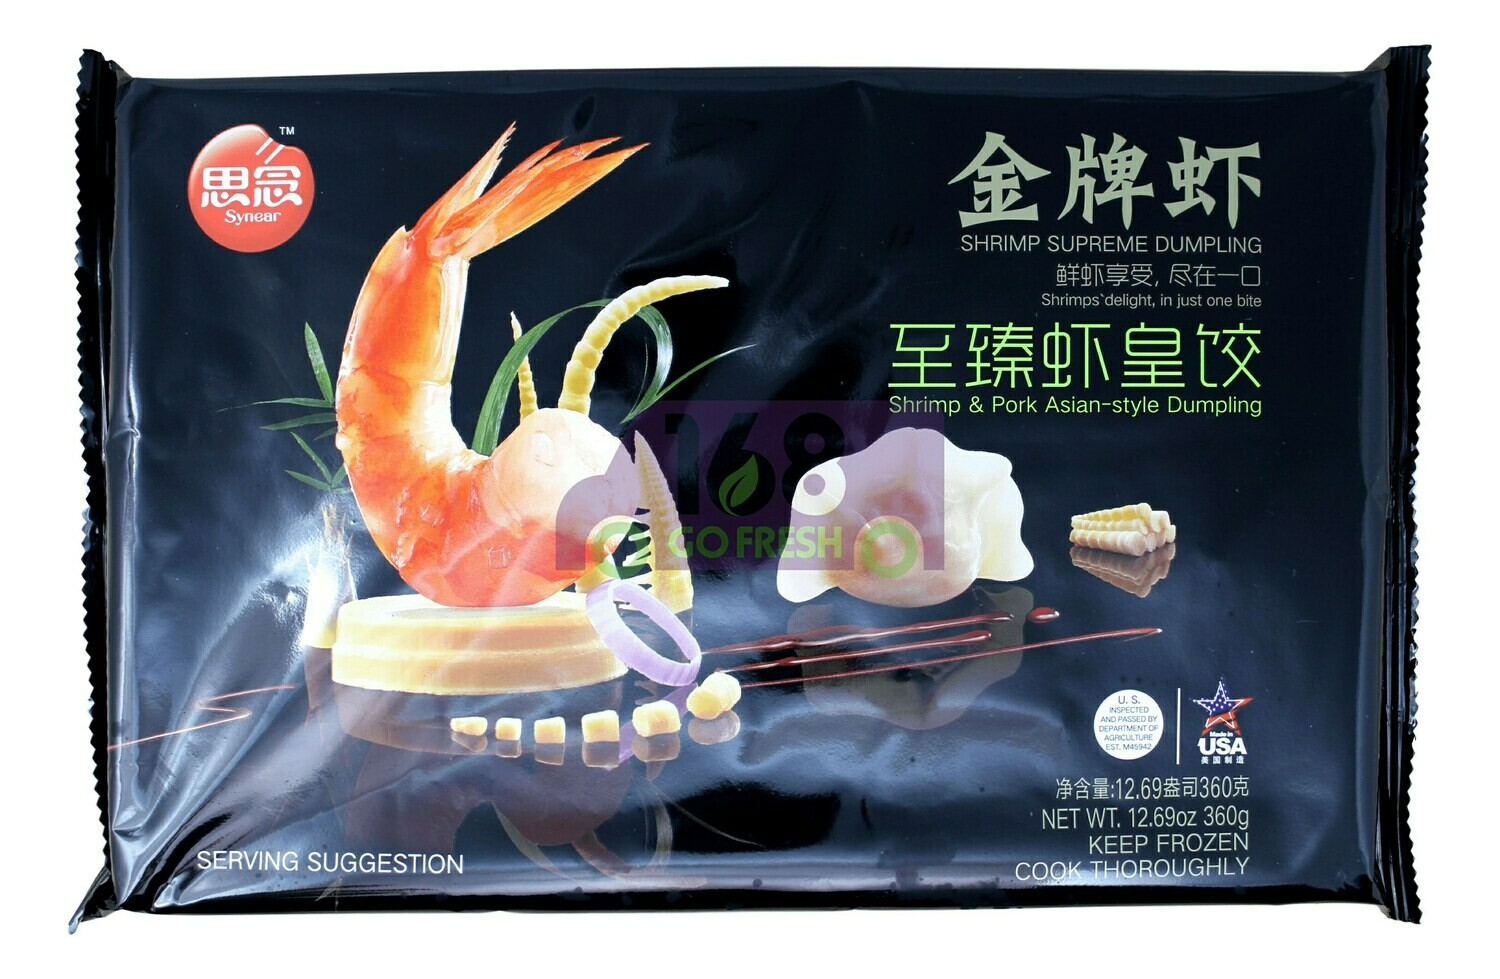 SYNEAR SHRIMP & PORK ASIAN-STYLE DUMPLING 思念 金牌虾 至臻虾皇饺(12.69OZ)